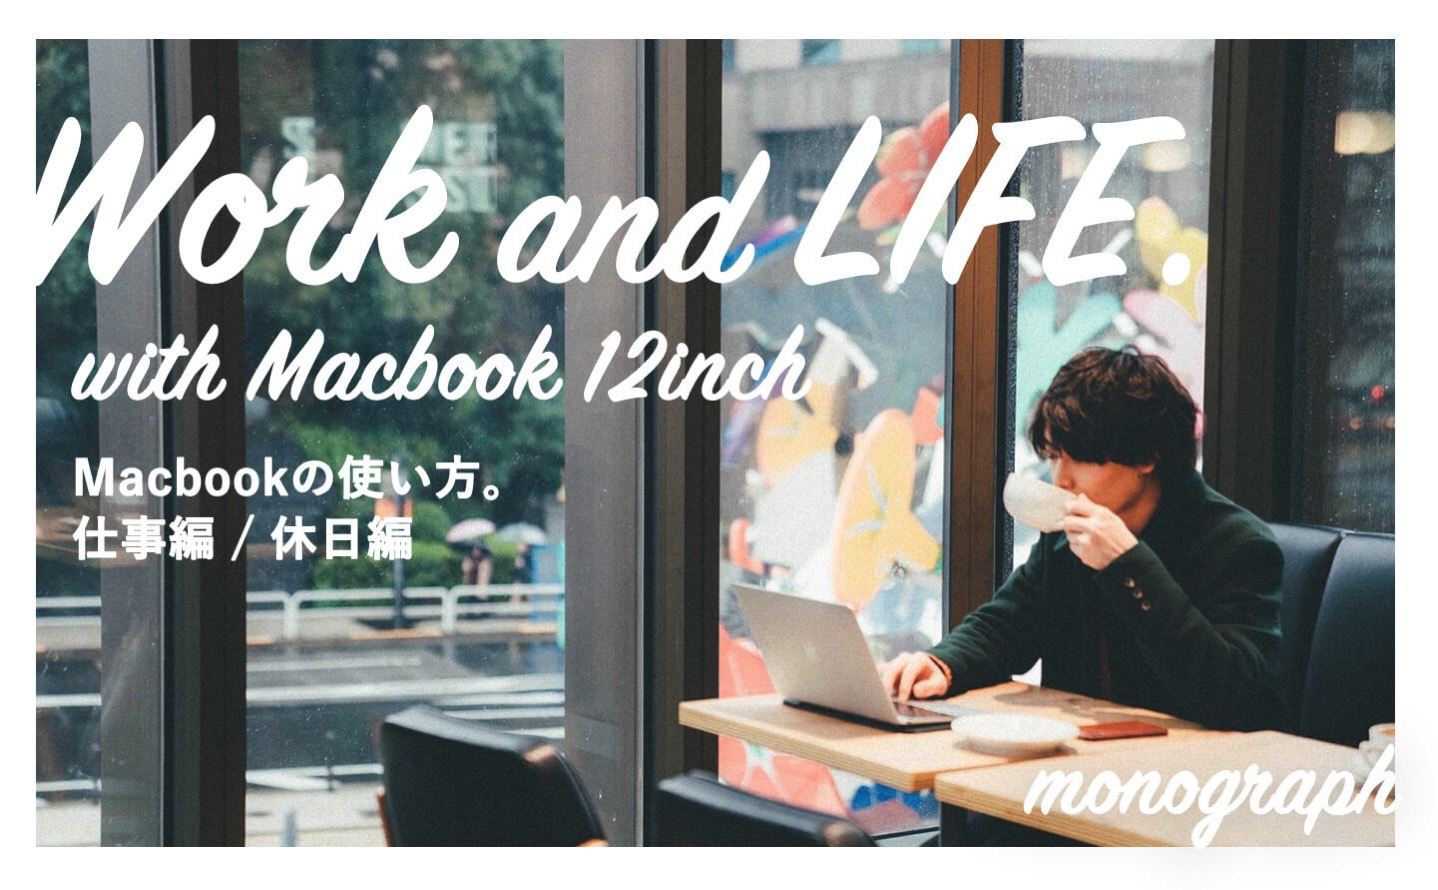 Macbook use